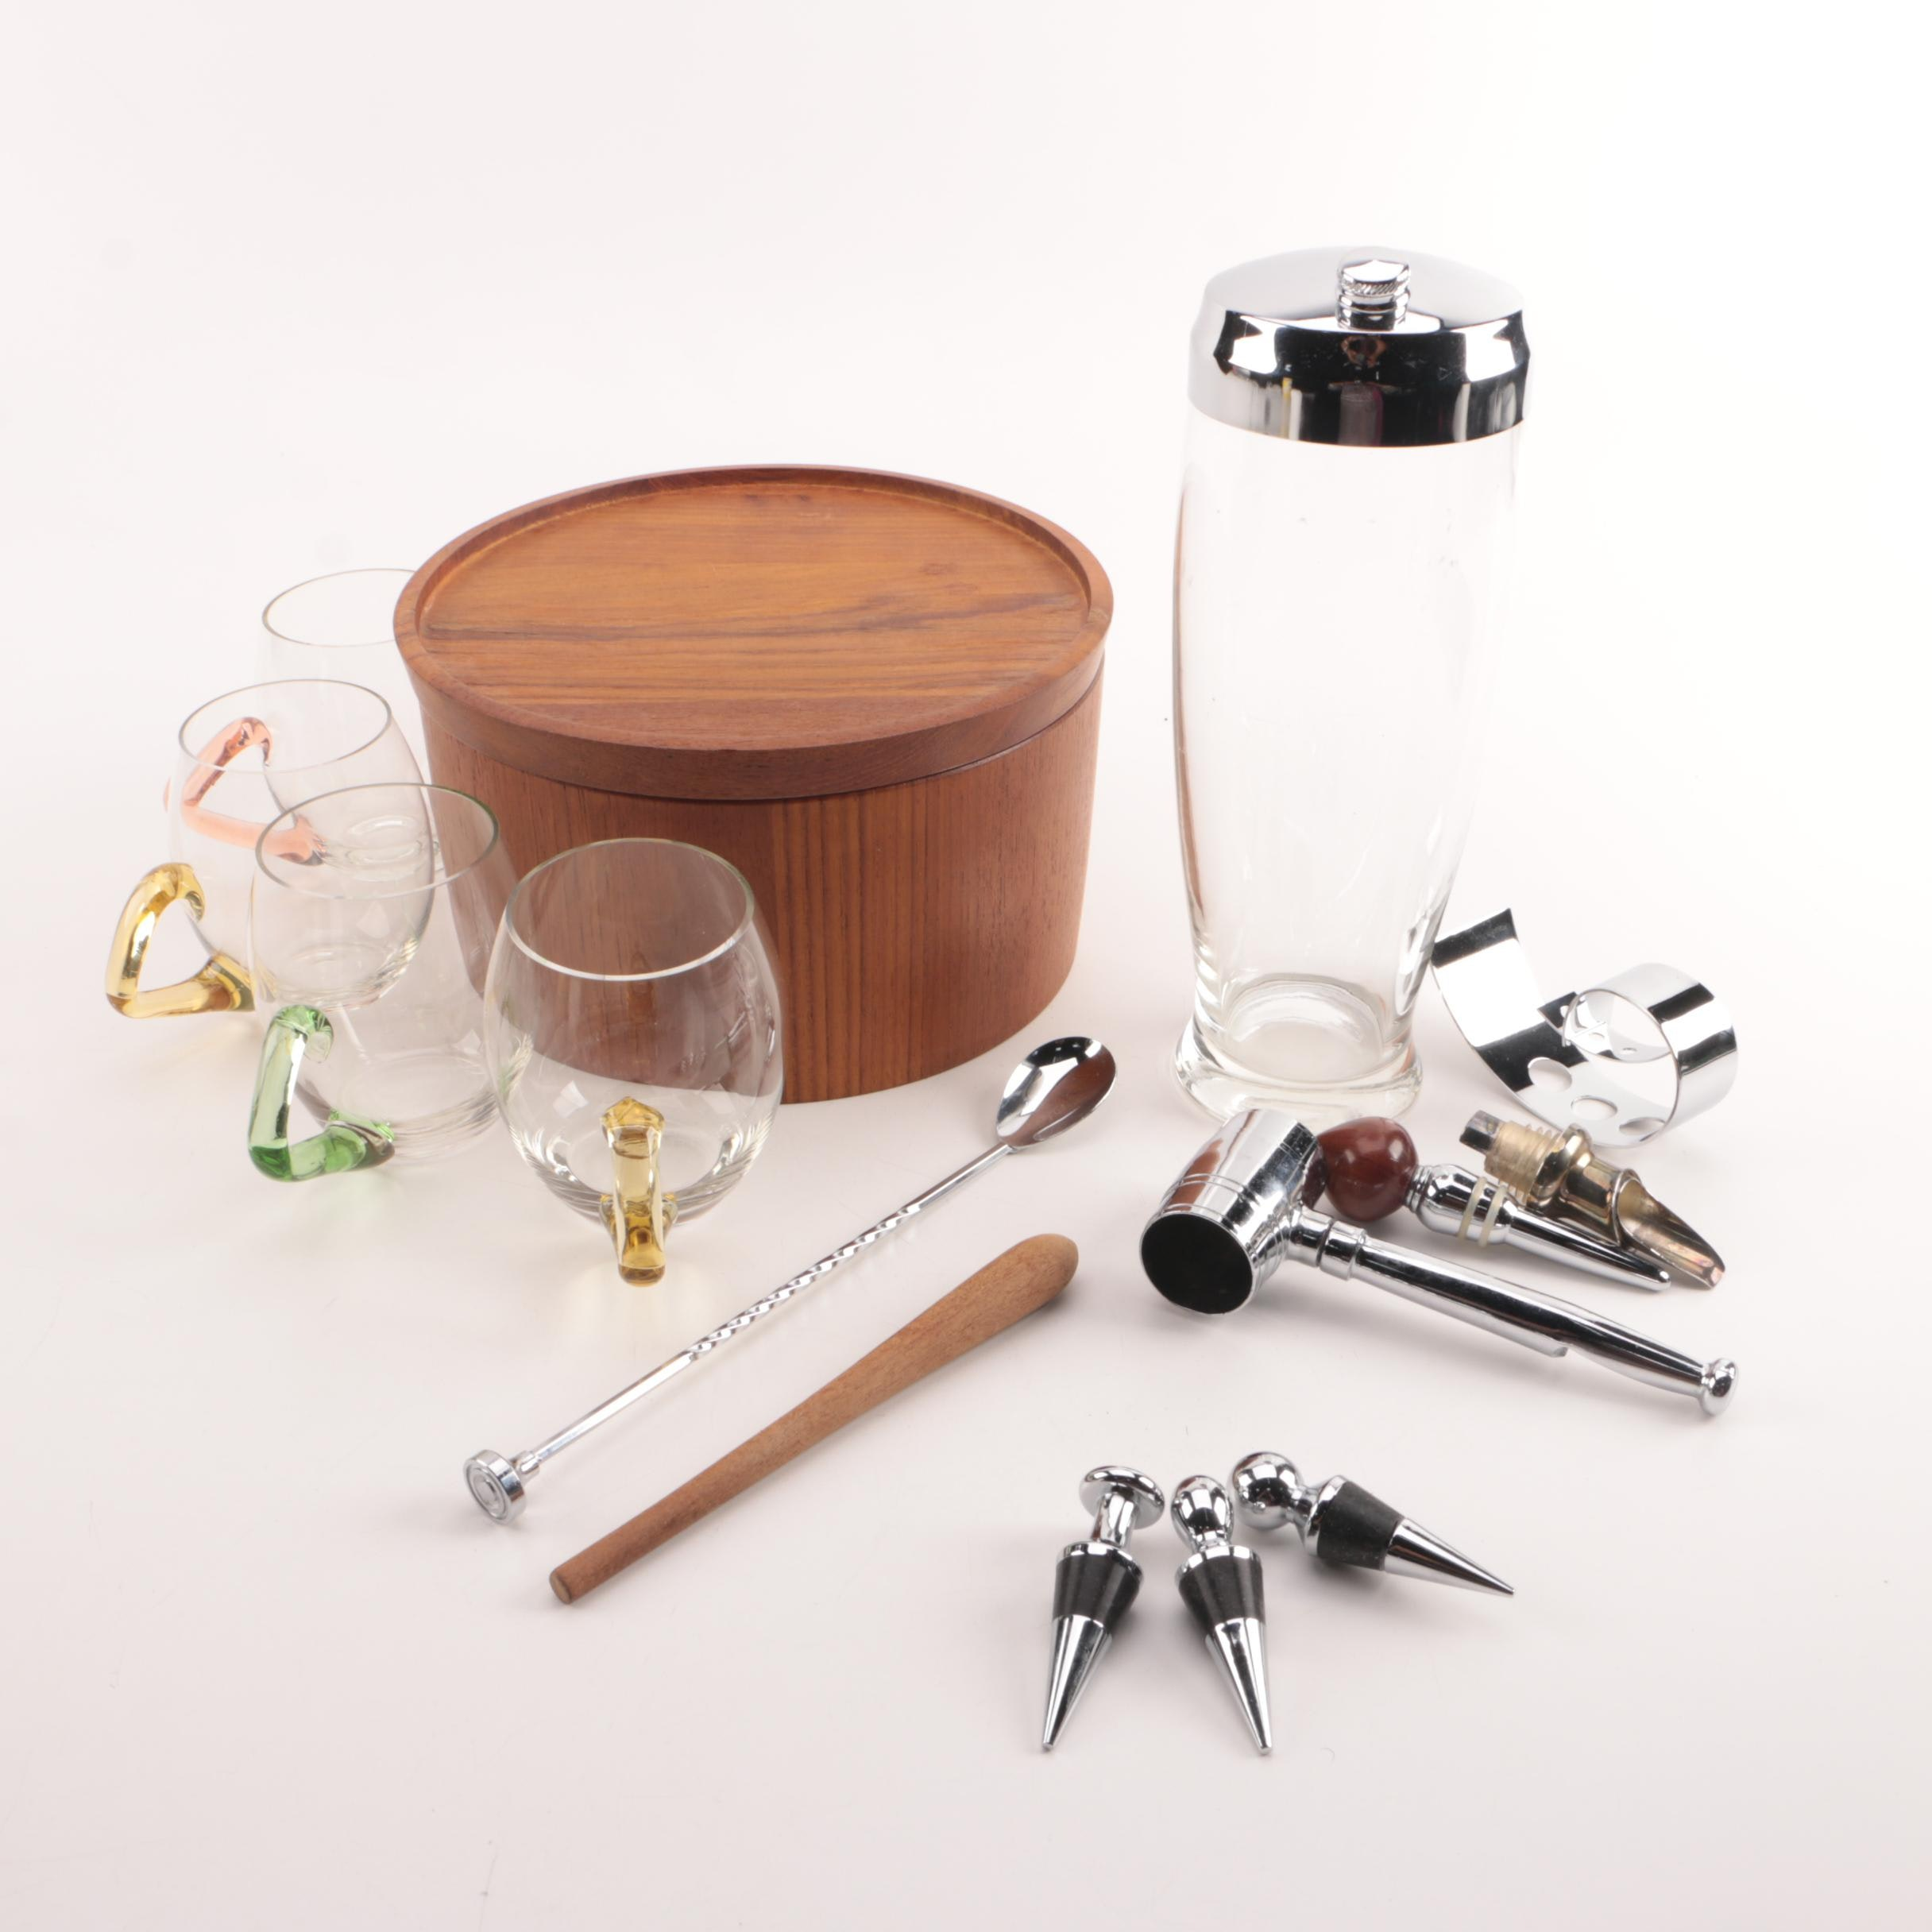 Glass Cocktail Shaker, Bottle Stoppers, Wooden Muddler, and Other Barware